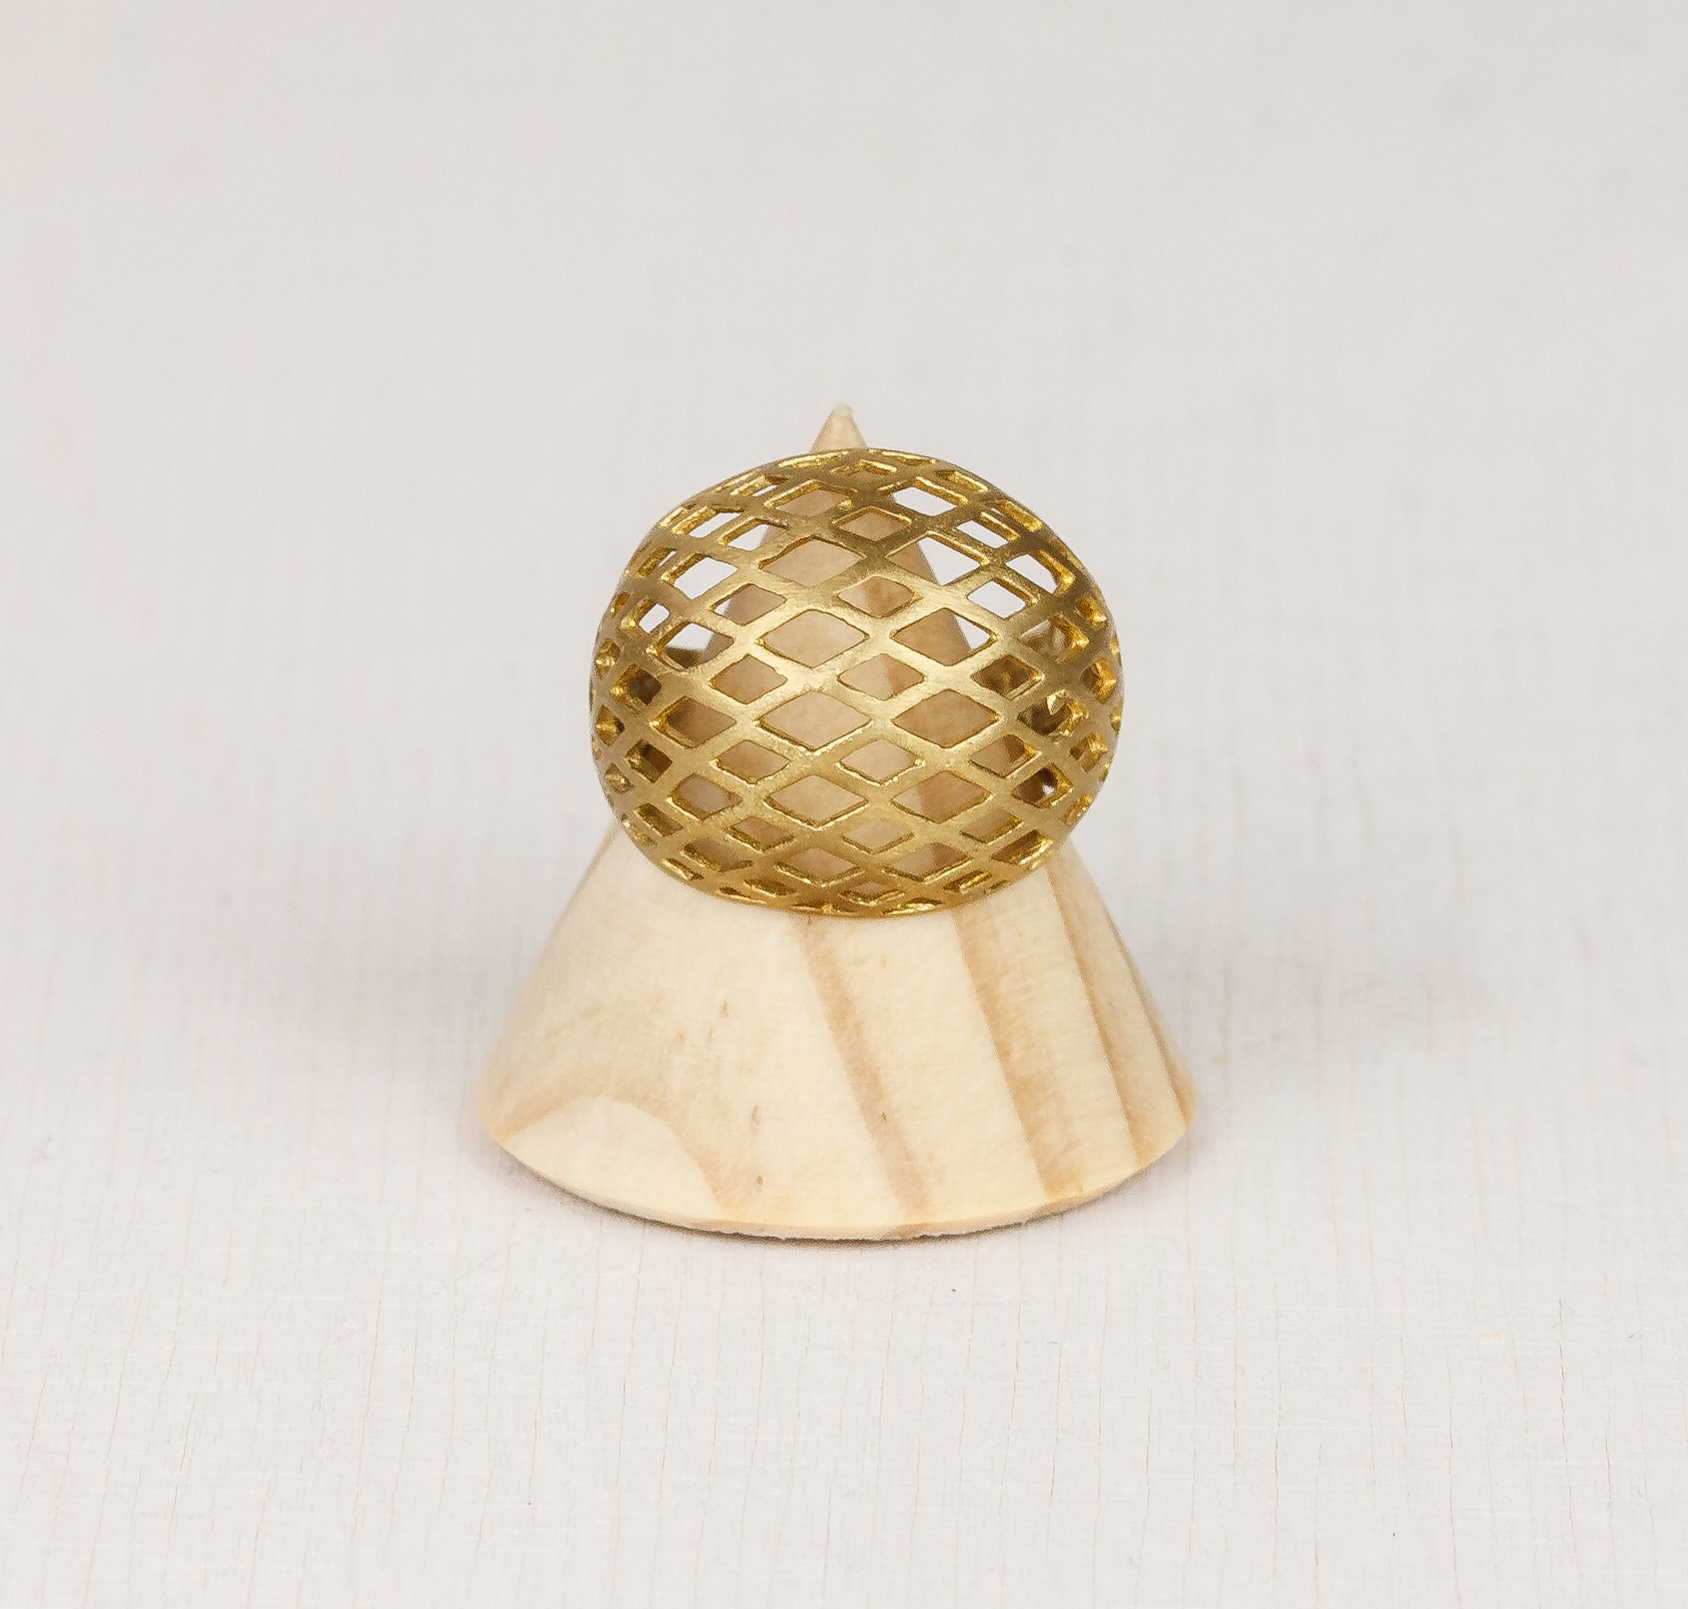 Mesh Sphere Adjustable Brass Ring by State of A